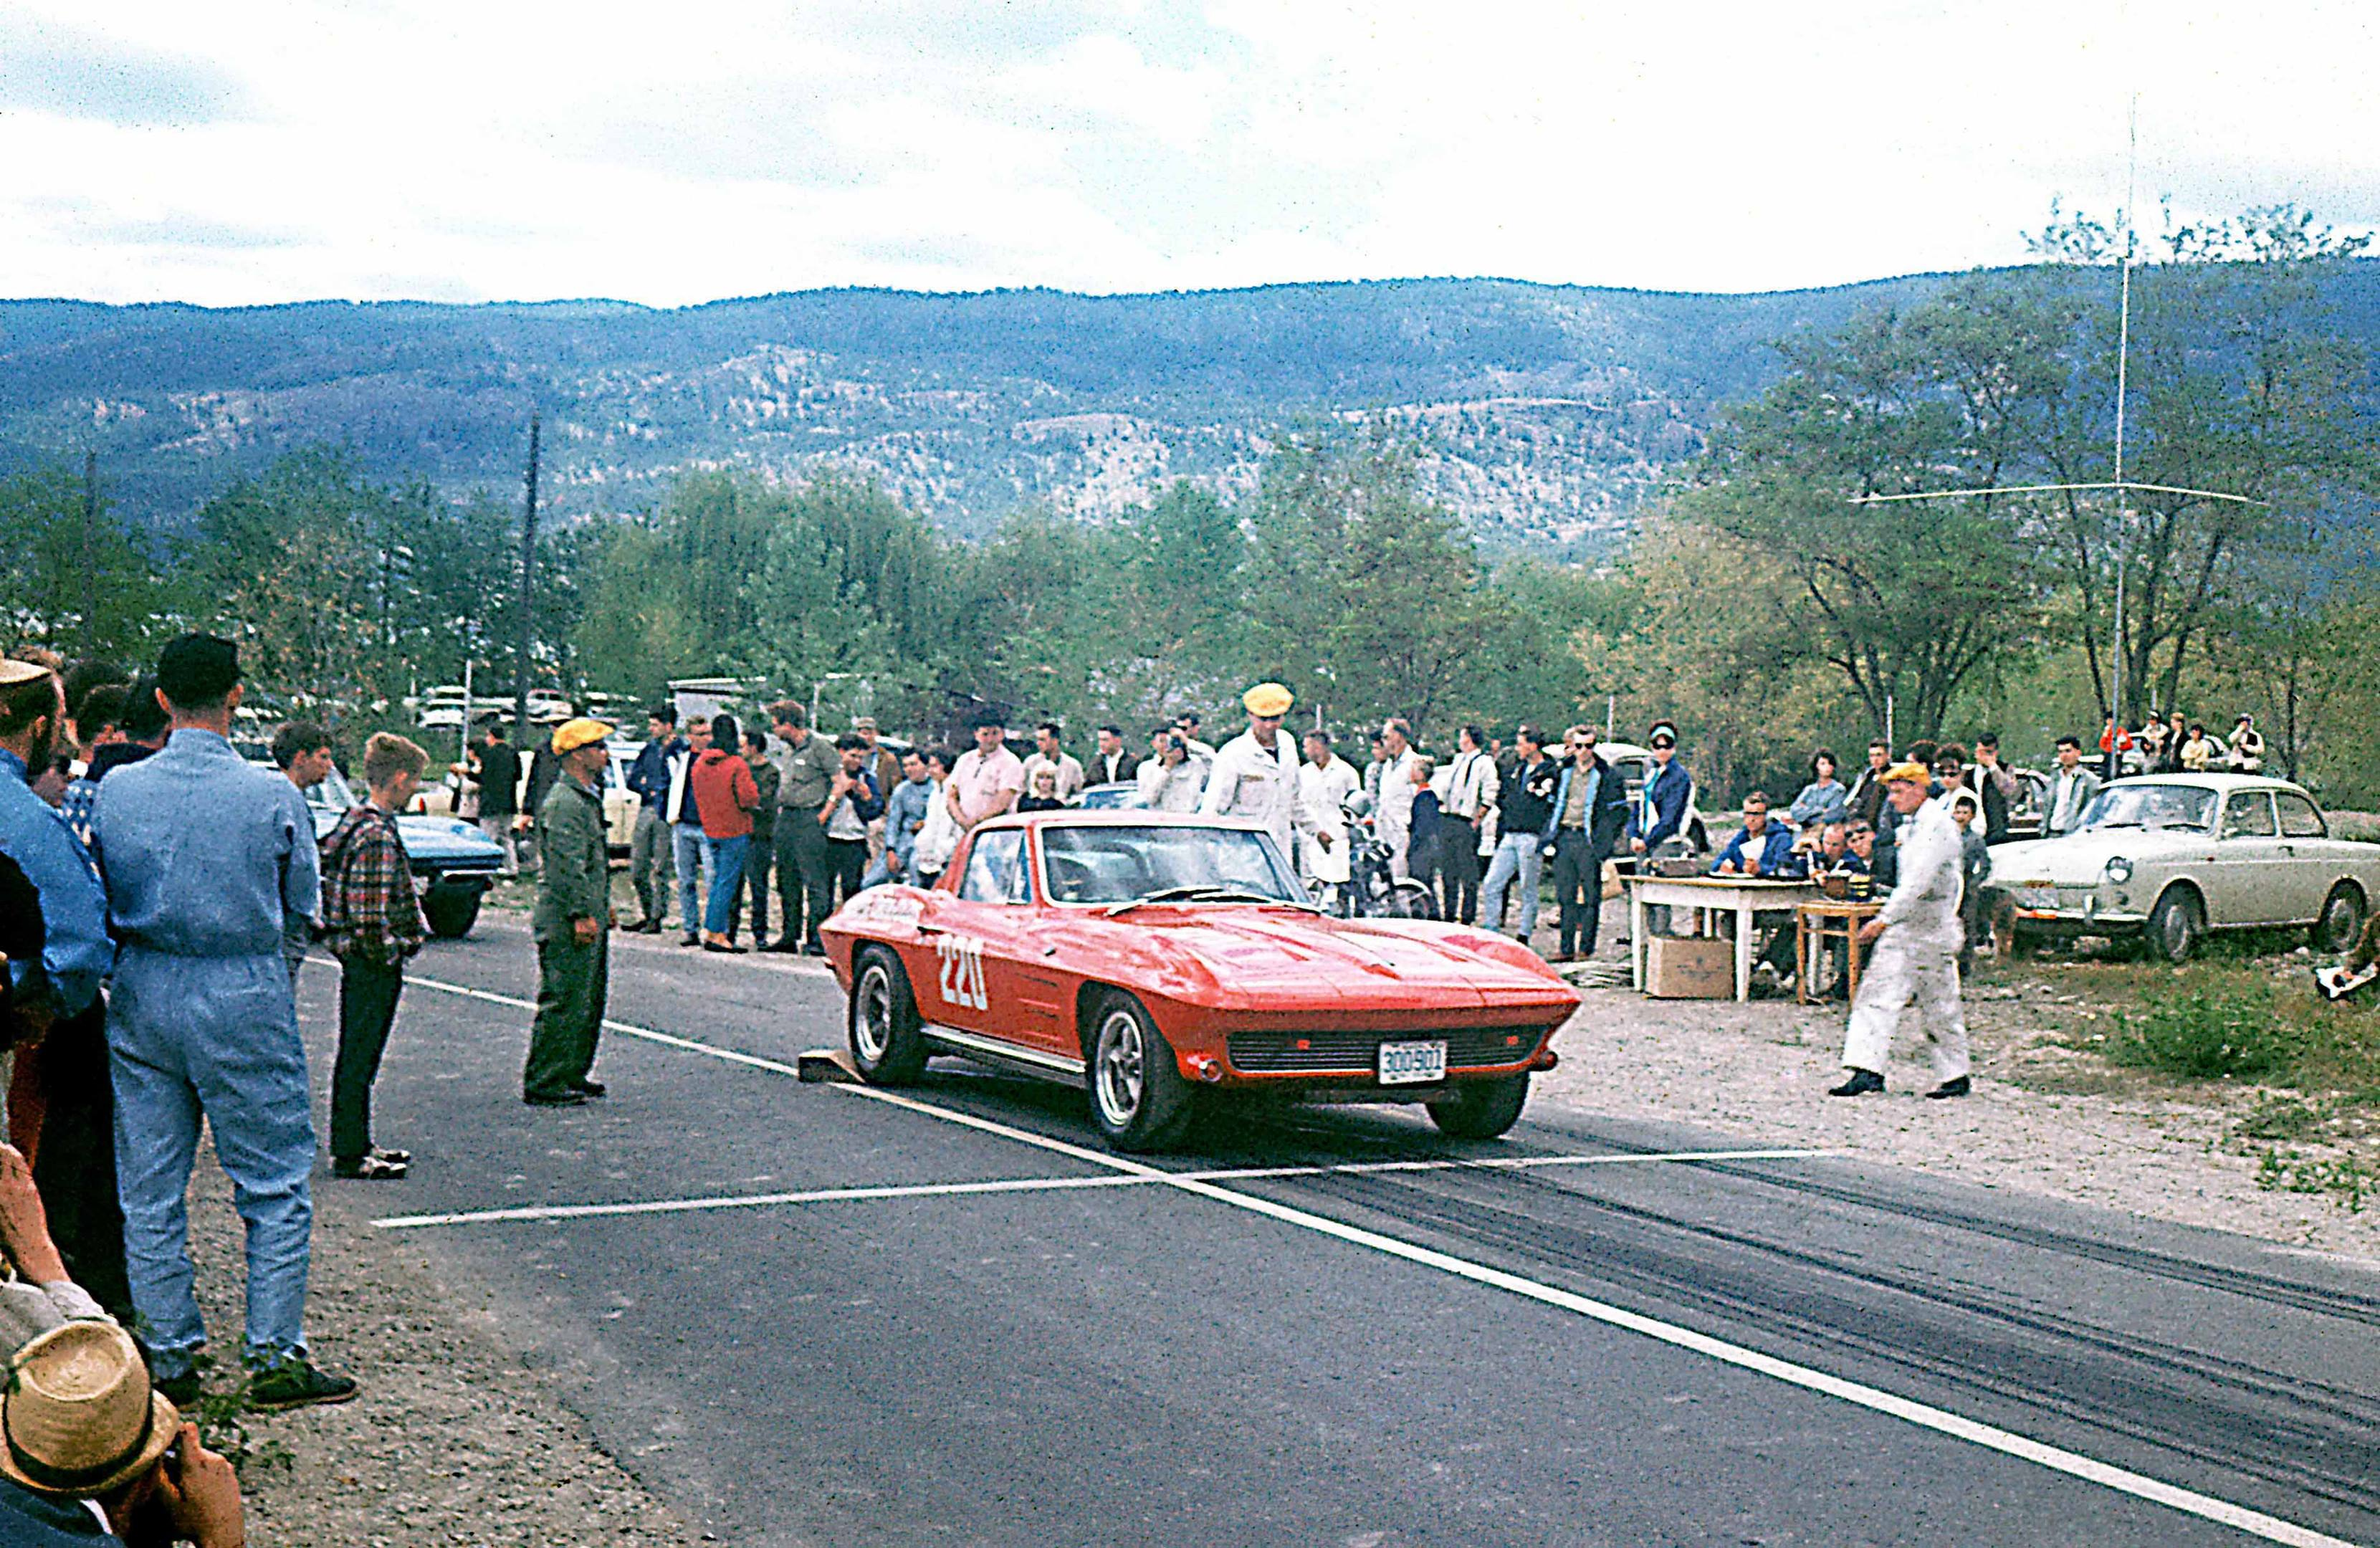 1966 Okanagan Hillclimb - Corvette Stingray